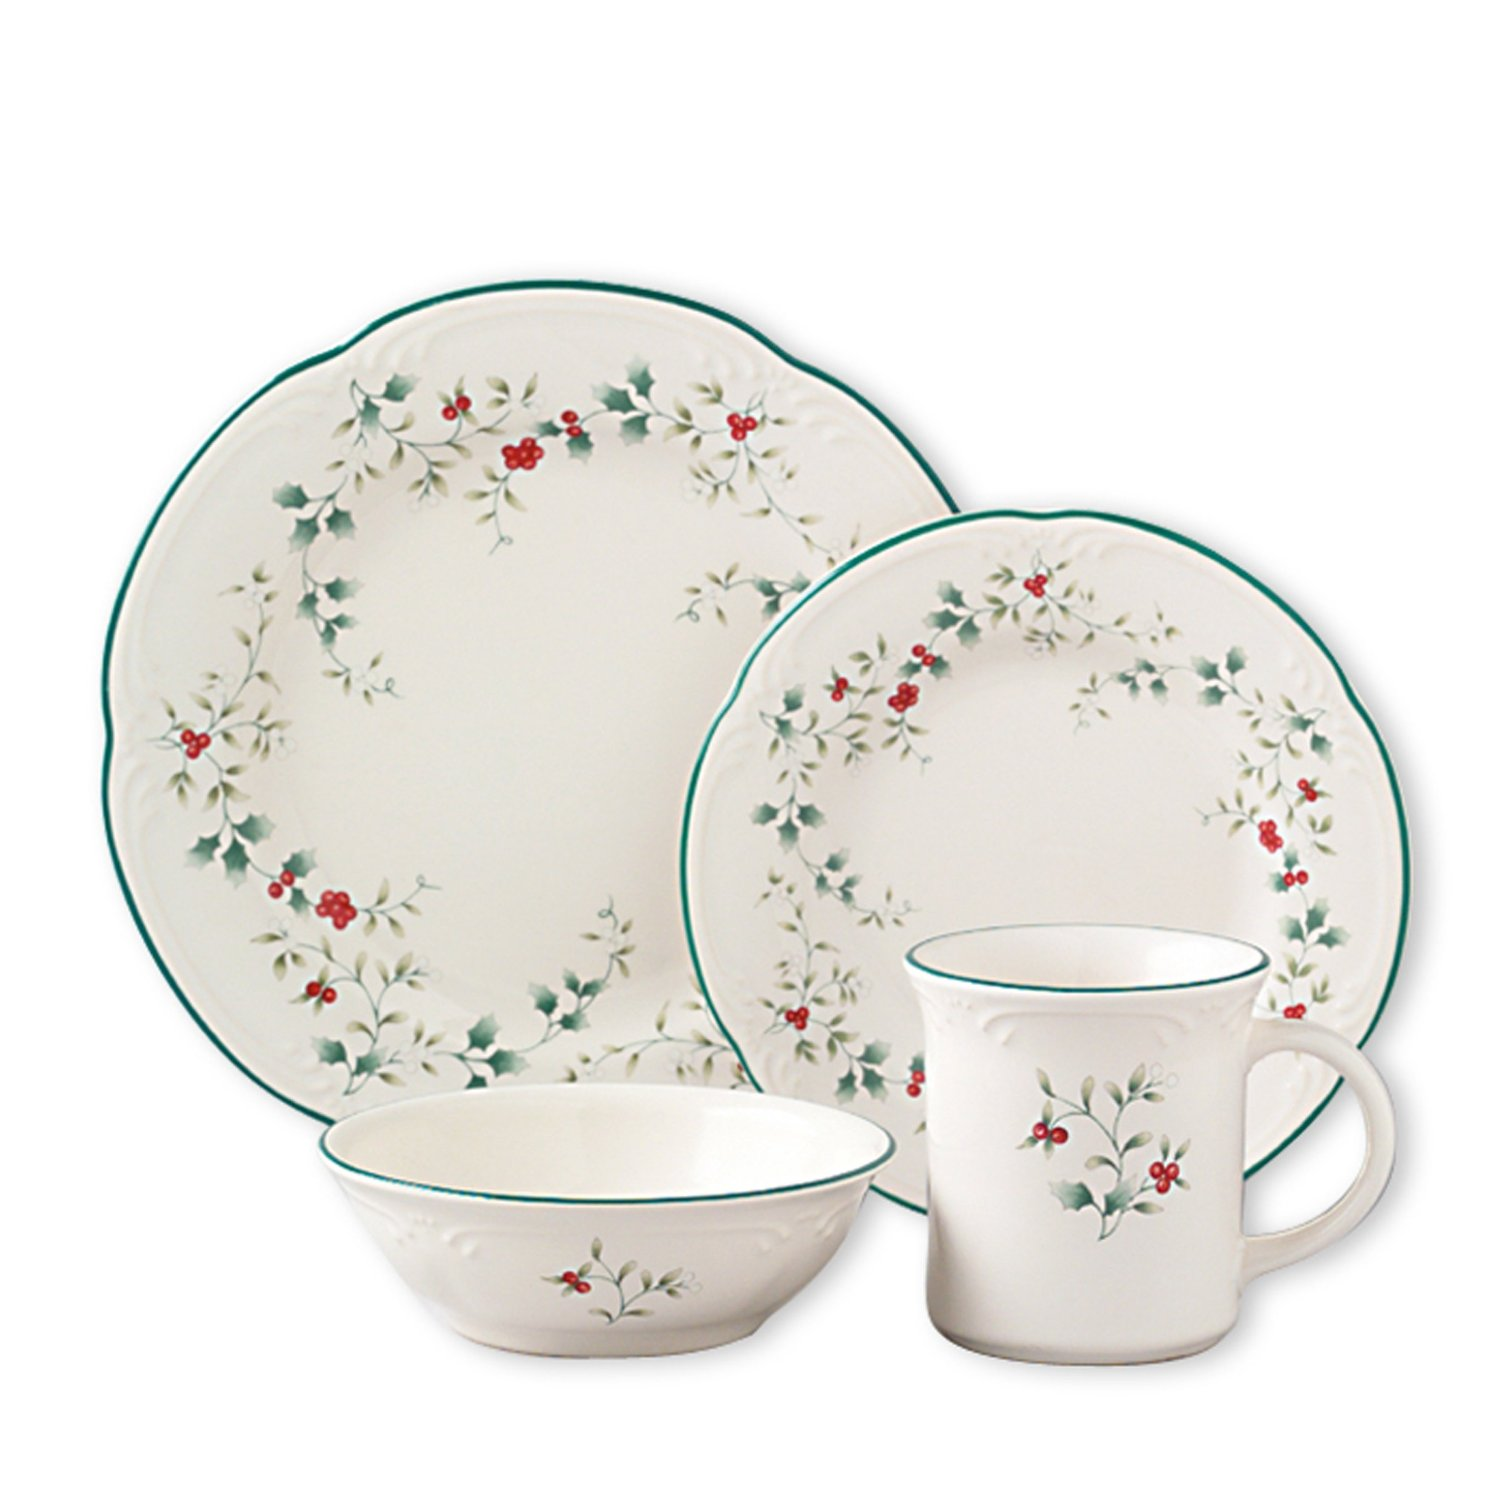 Extraordinary Christmas Dinnerware For Christmas Decorating Ideas With Christmas Dinnerware Sets Clearance  sc 1 st  Straydogrecordingco.com & Kitchen \u0026 Dining Sets: Extraordinary Christmas Dinnerware For ...